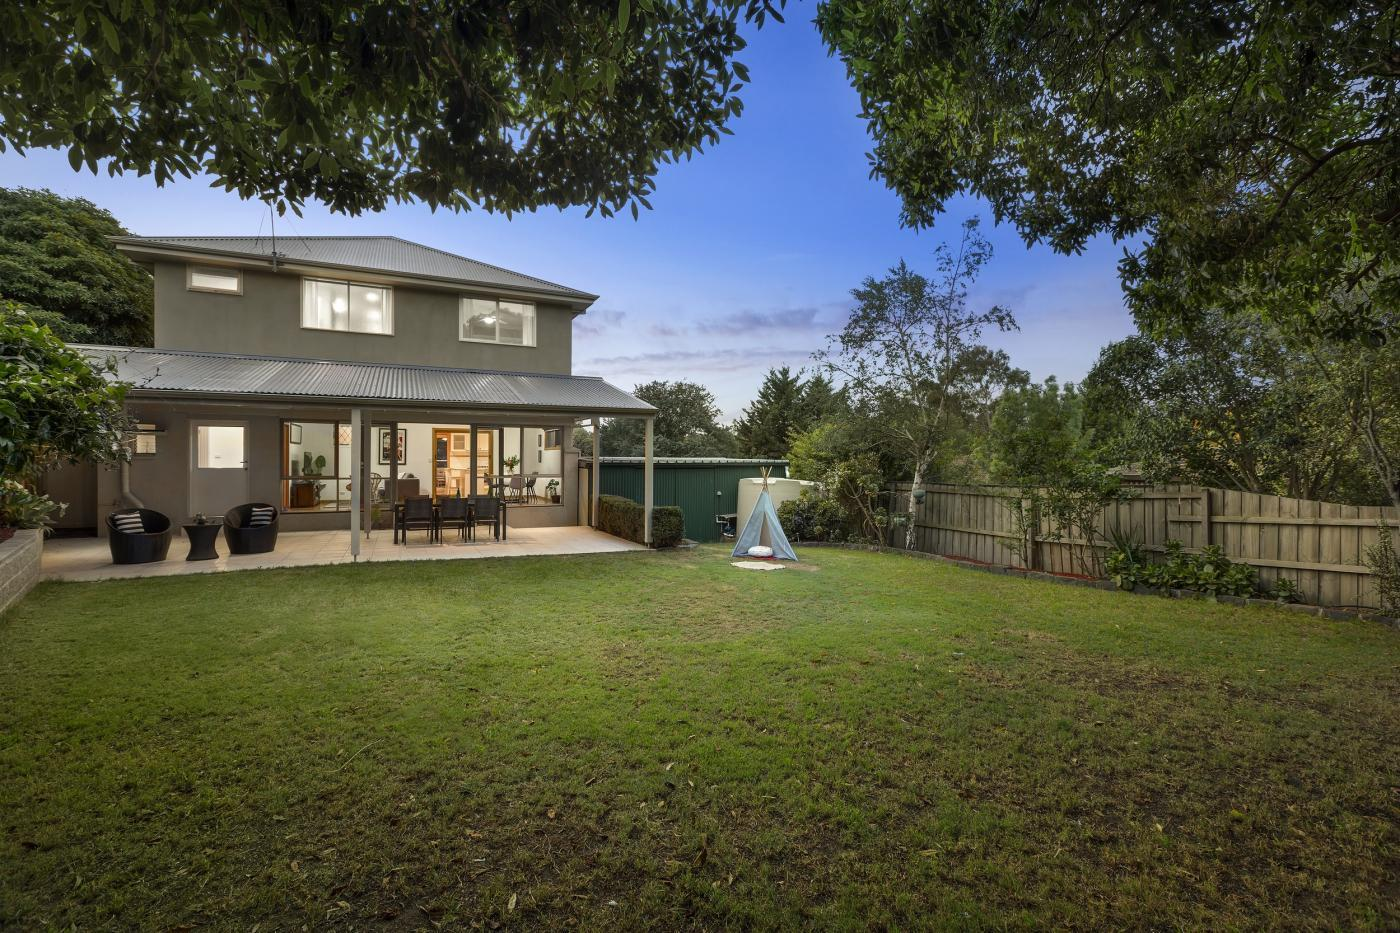 Property data for 173 Graham Road, Viewbank, Vic 3084. Get sold price history for this house  median property prices for Viewbank, Vic 3084